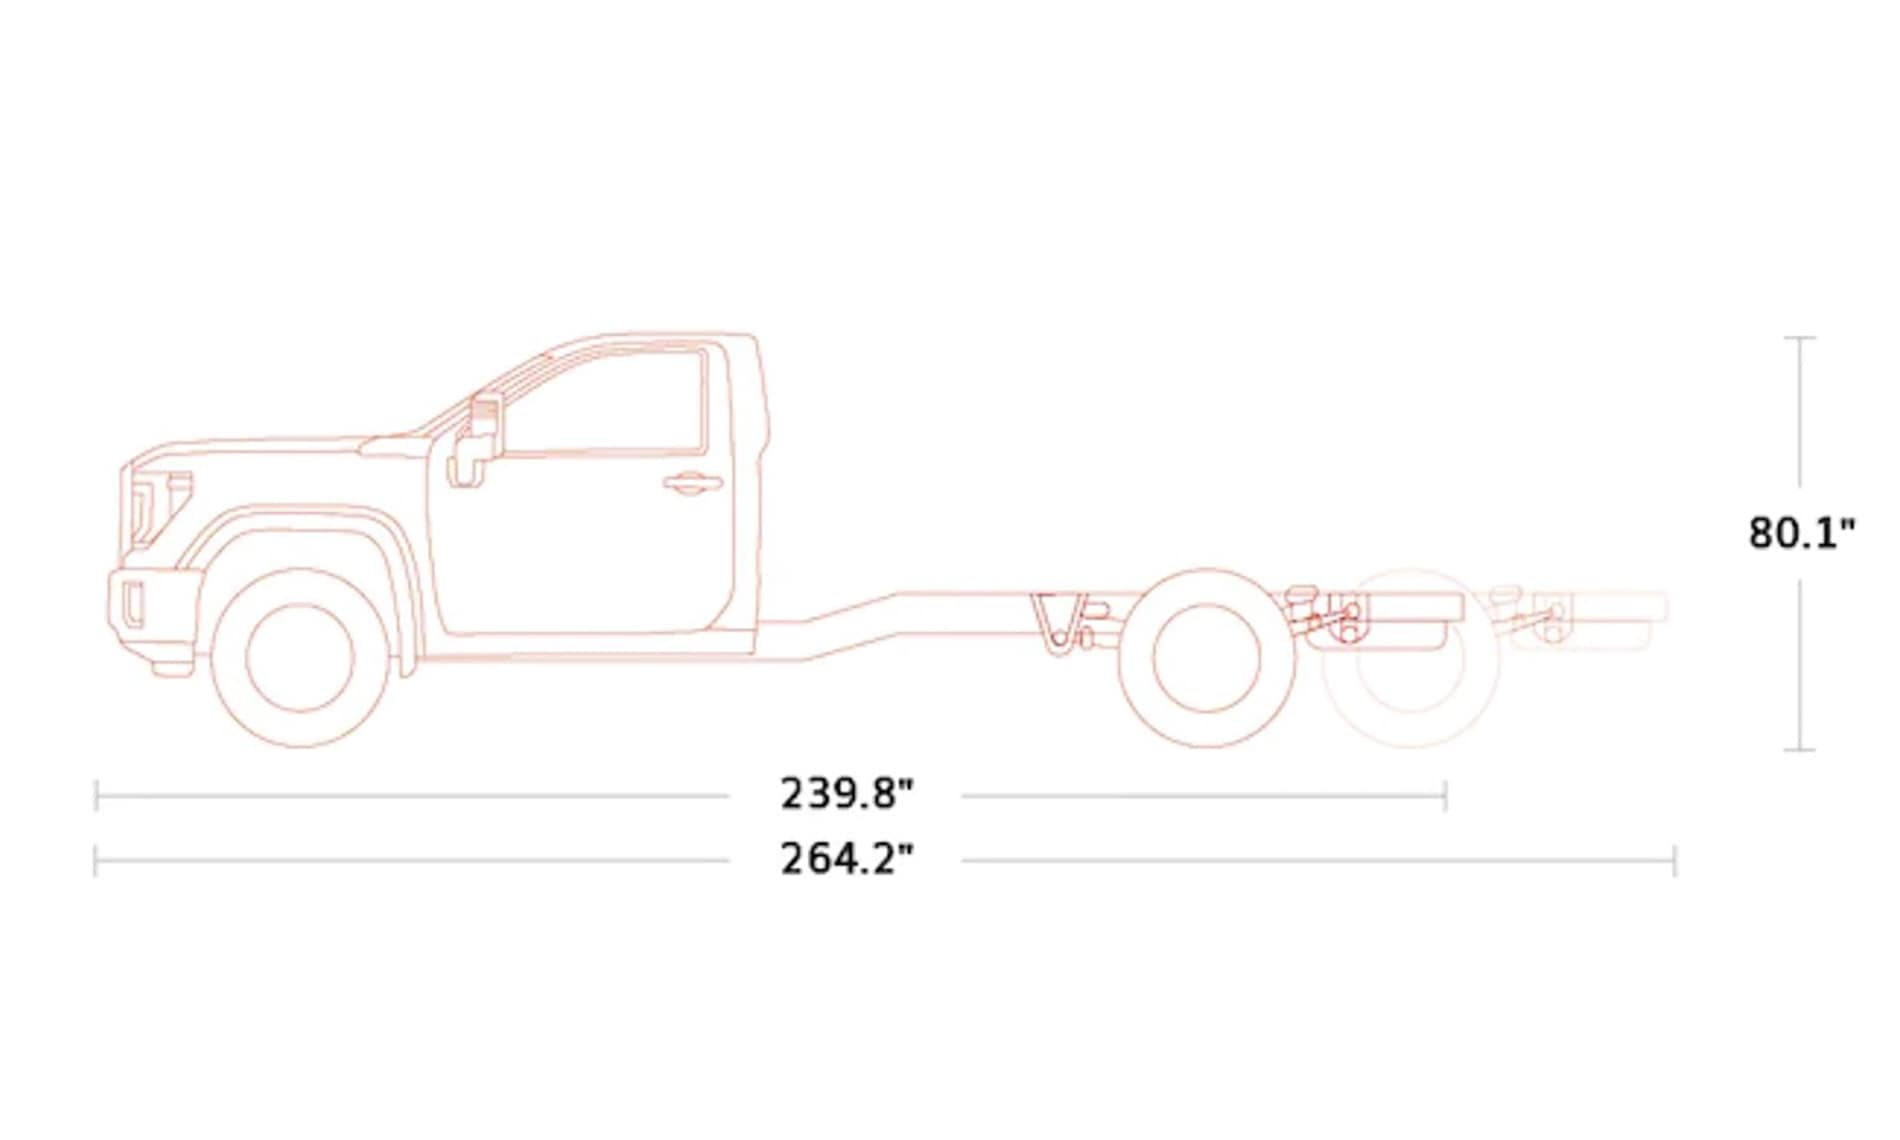 2021 GMC Sierra 3500 HD Regular Chassis Cab in St. Louis